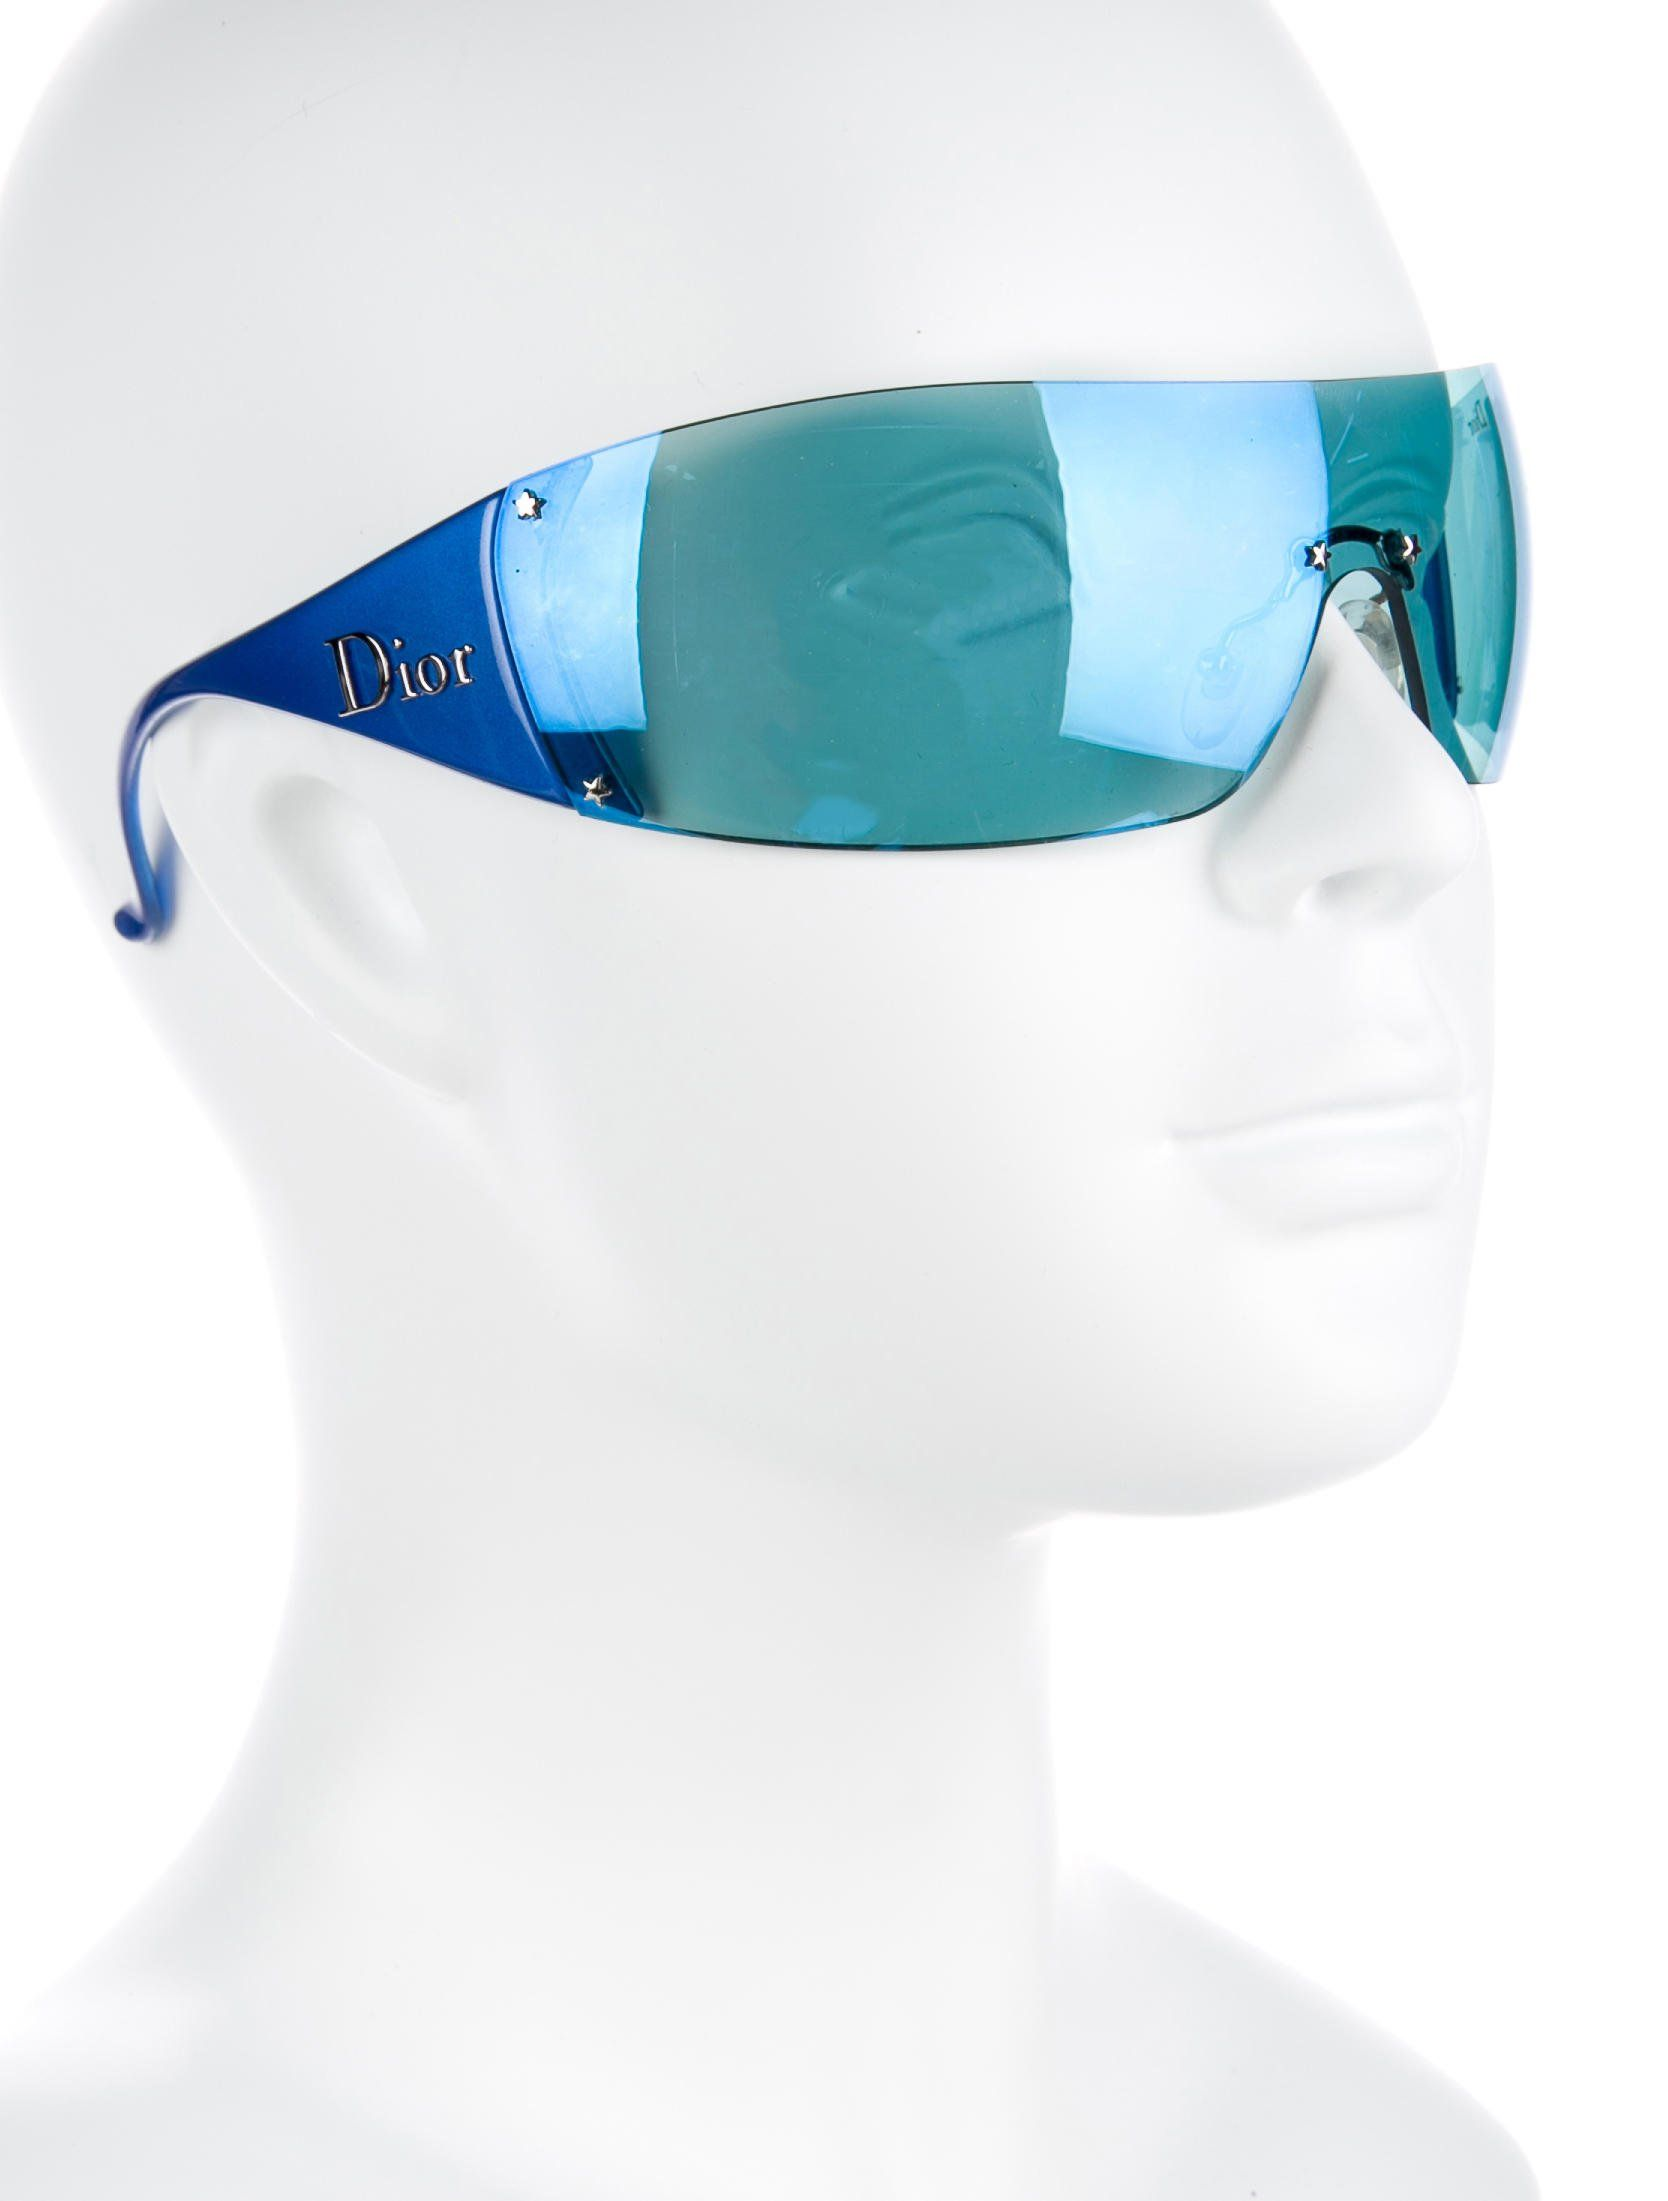 5063ad14374b0 Cobalt acetate Christian Dior Golf shield sunglasses with tinted lenses